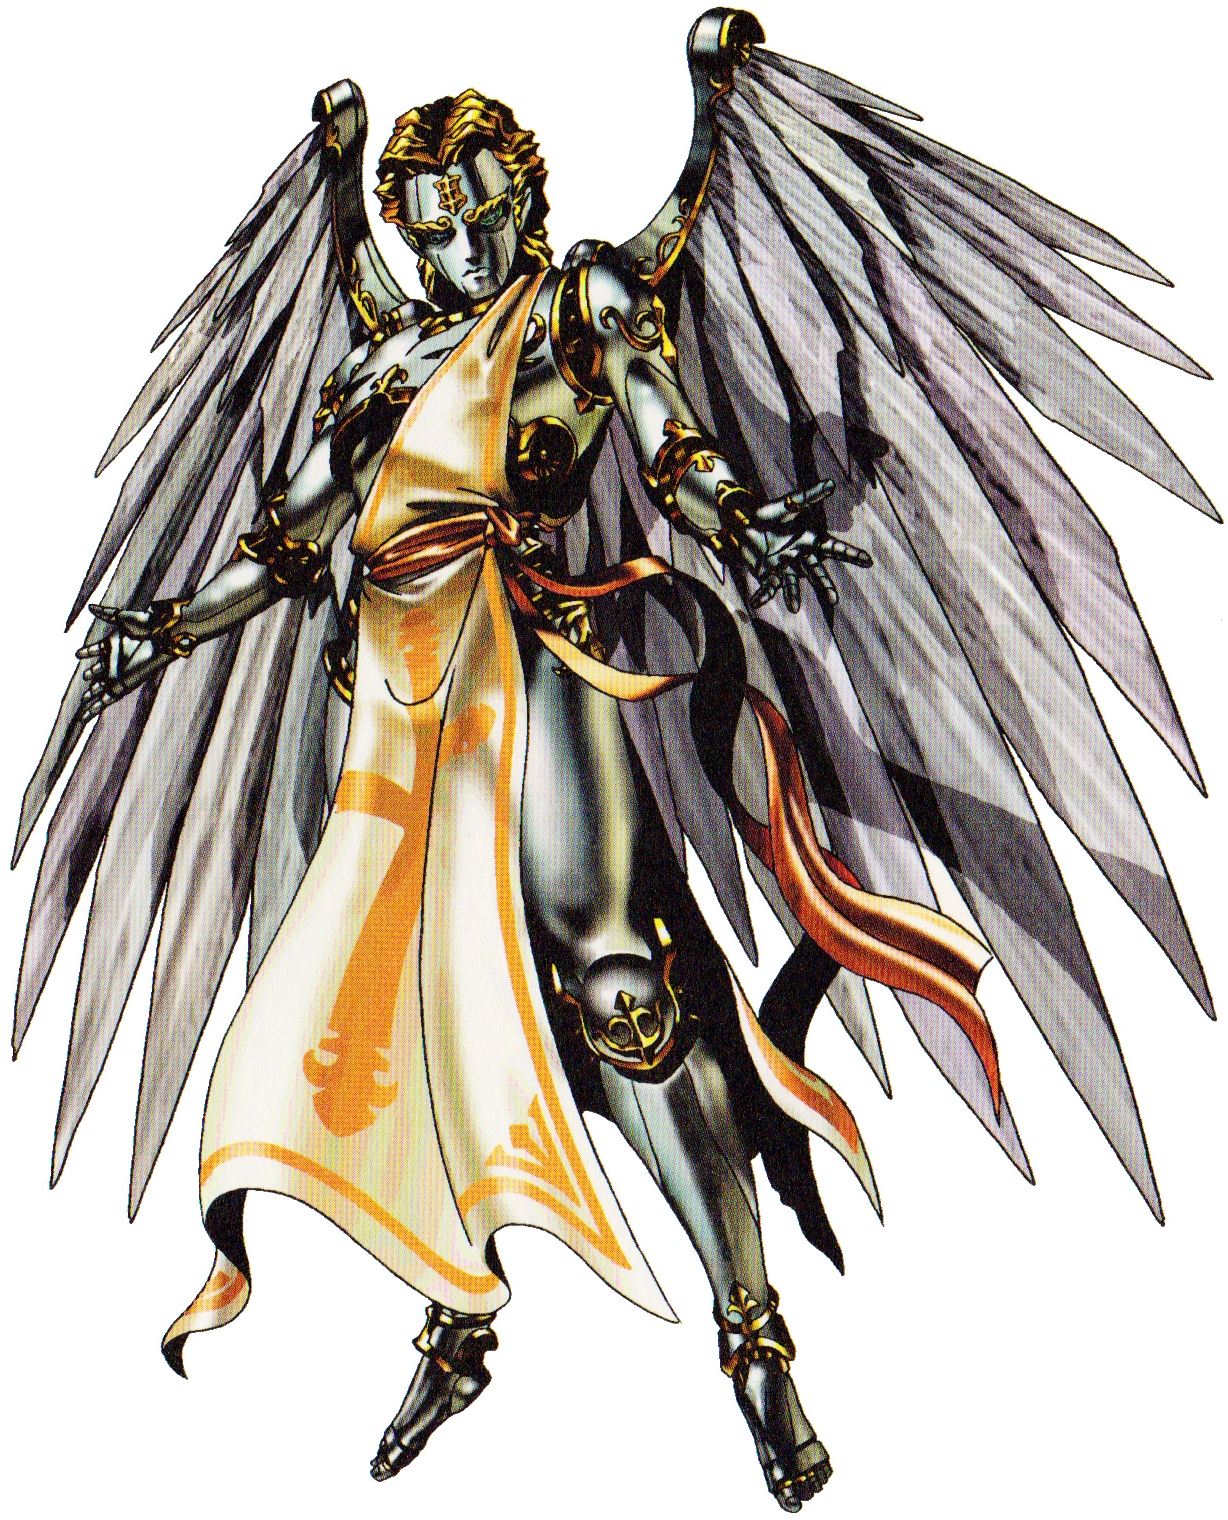 Metatron Megami Tensei Wiki Fandom Powered By Wikia